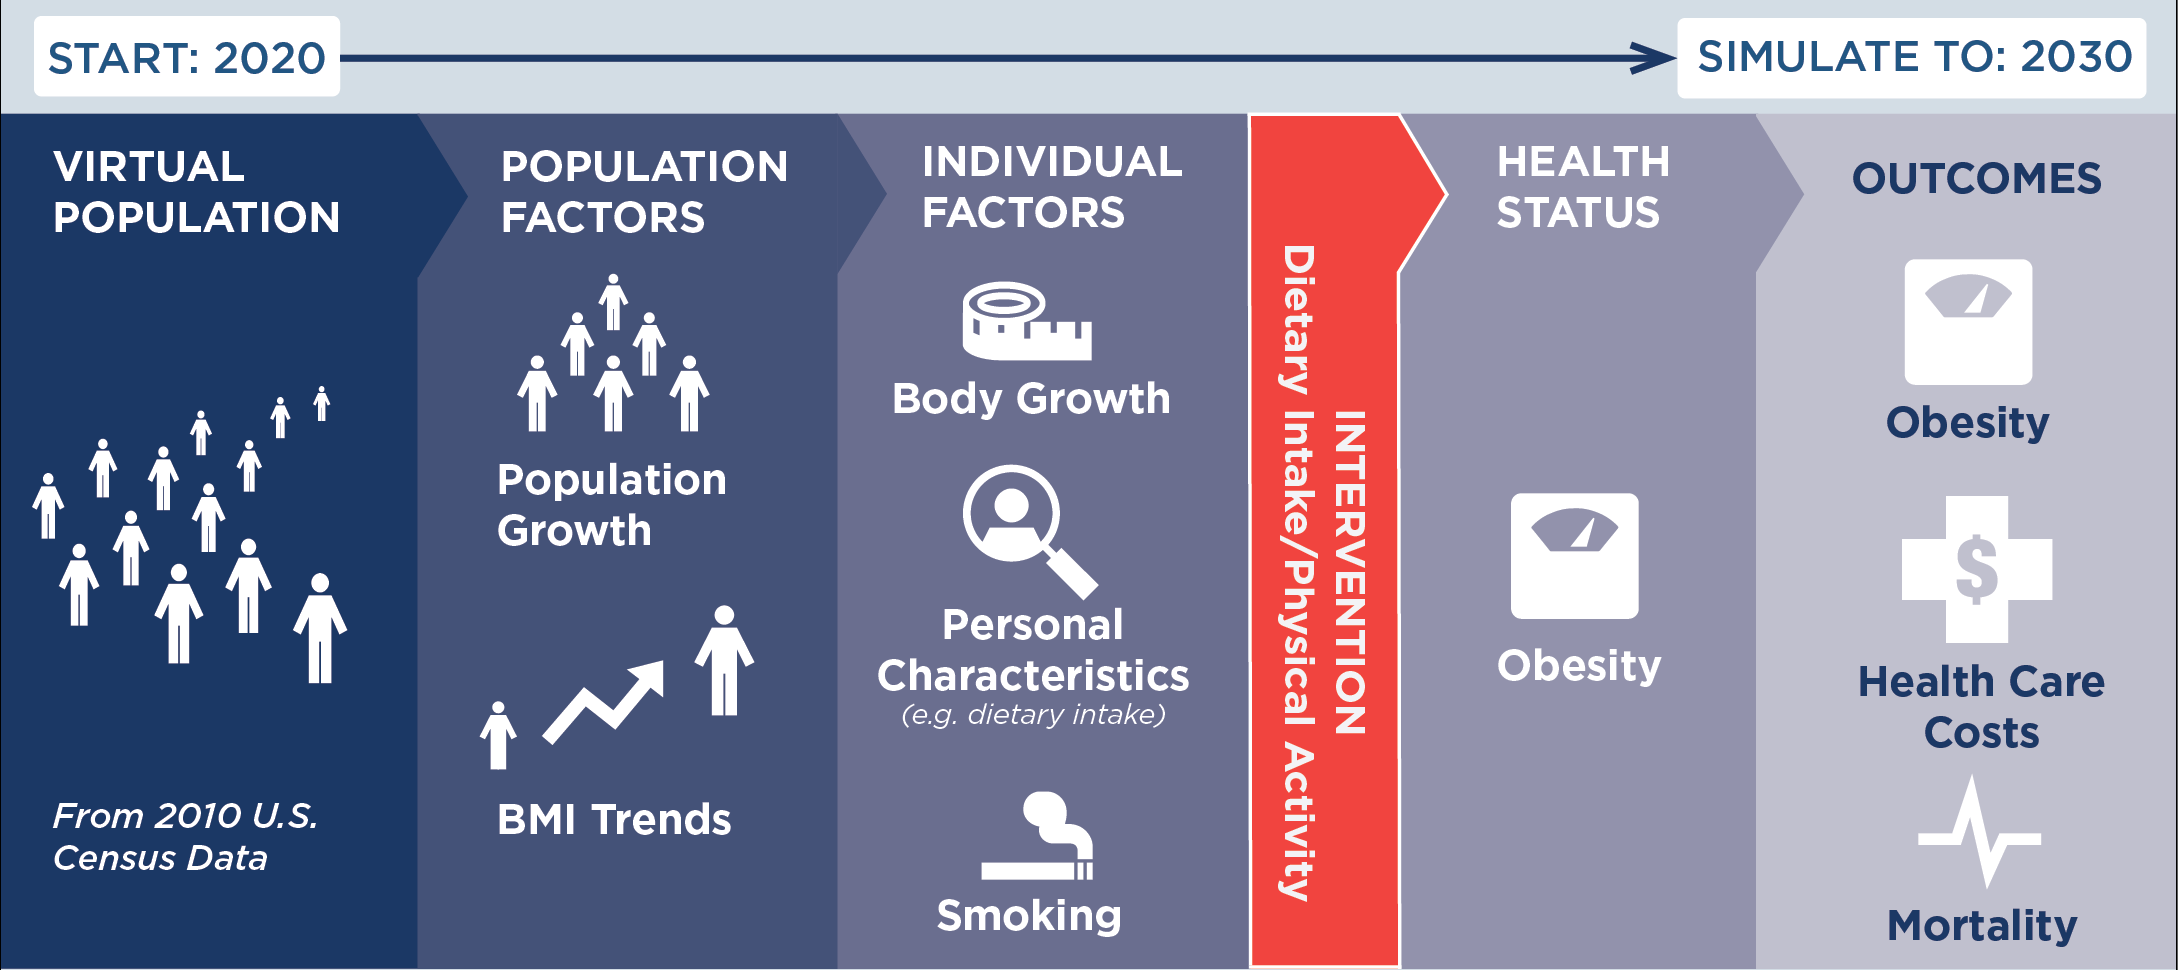 CHOICES microsimulation model: start in 2020 and simulate to 2030. Start with a virtual population using data from the 2010 U.S. census. Then take into account population factors, such as population growth and BMI trends. Then take into account individual factors, such as body growth, personal characteristics (e.g. dietary intake), and smoking. Then, input the intervention (dietary intake/physical activity). Then, look at health status (obesity) and outcomes (obesity, health care costs, and mortality).